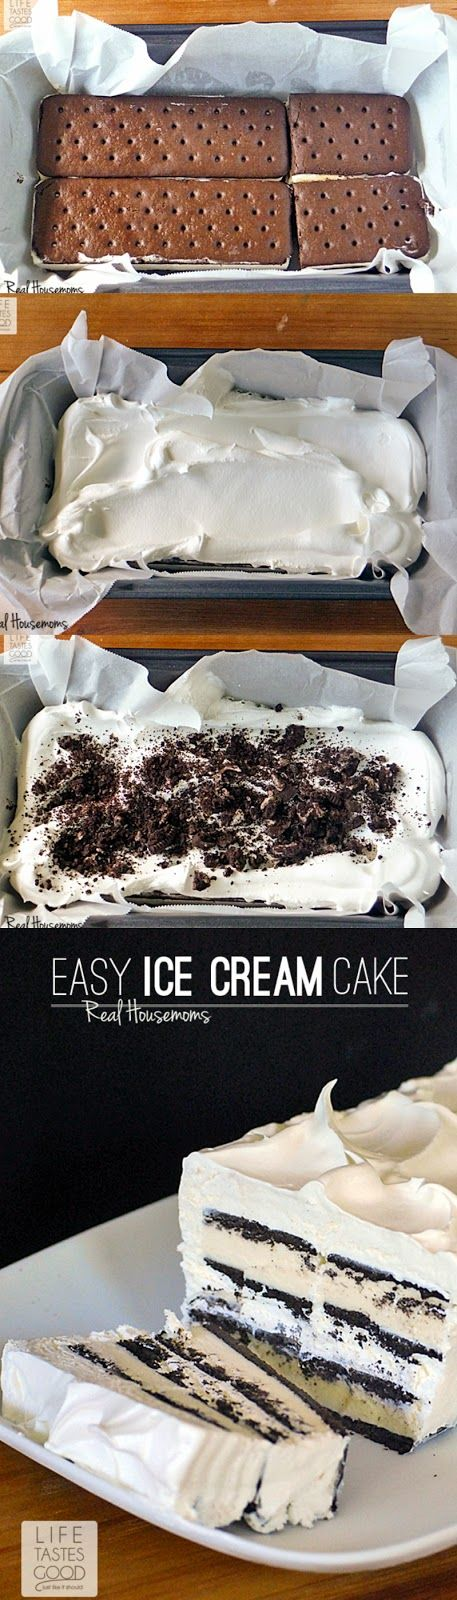 Easy Ice Cream Sandwich Cake | by Life Tastes Good is a chocolate and whipped cream dessert that only takes about 10 minutes to assemble! It is the easiest cake you'll ever make!